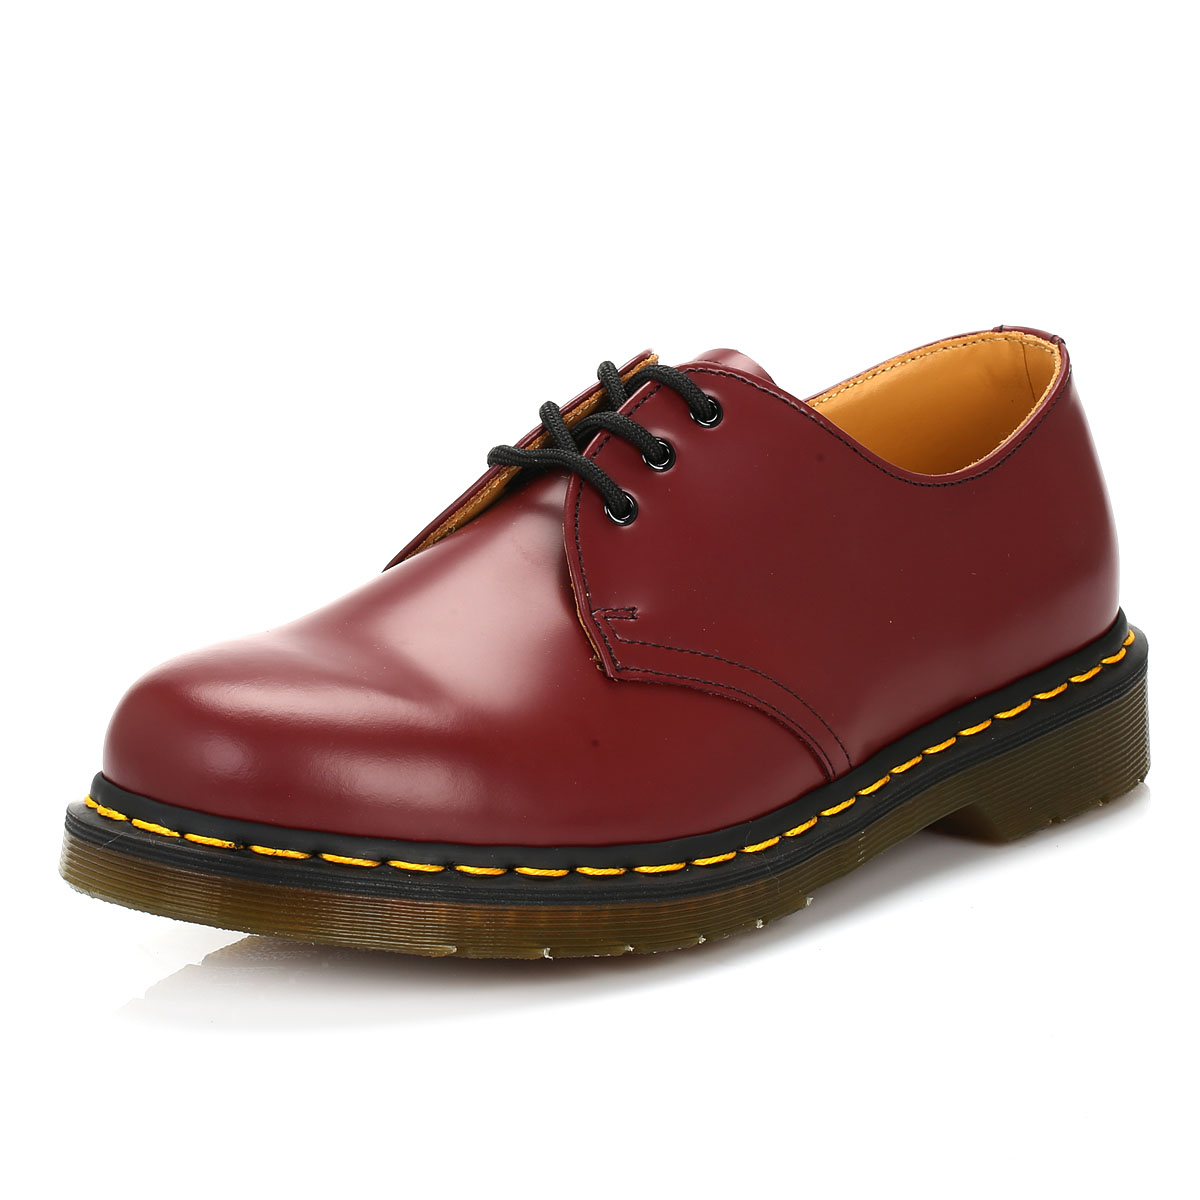 dr martens unisex cherry red casual shoes mens womens lace up leather docs ebay. Black Bedroom Furniture Sets. Home Design Ideas